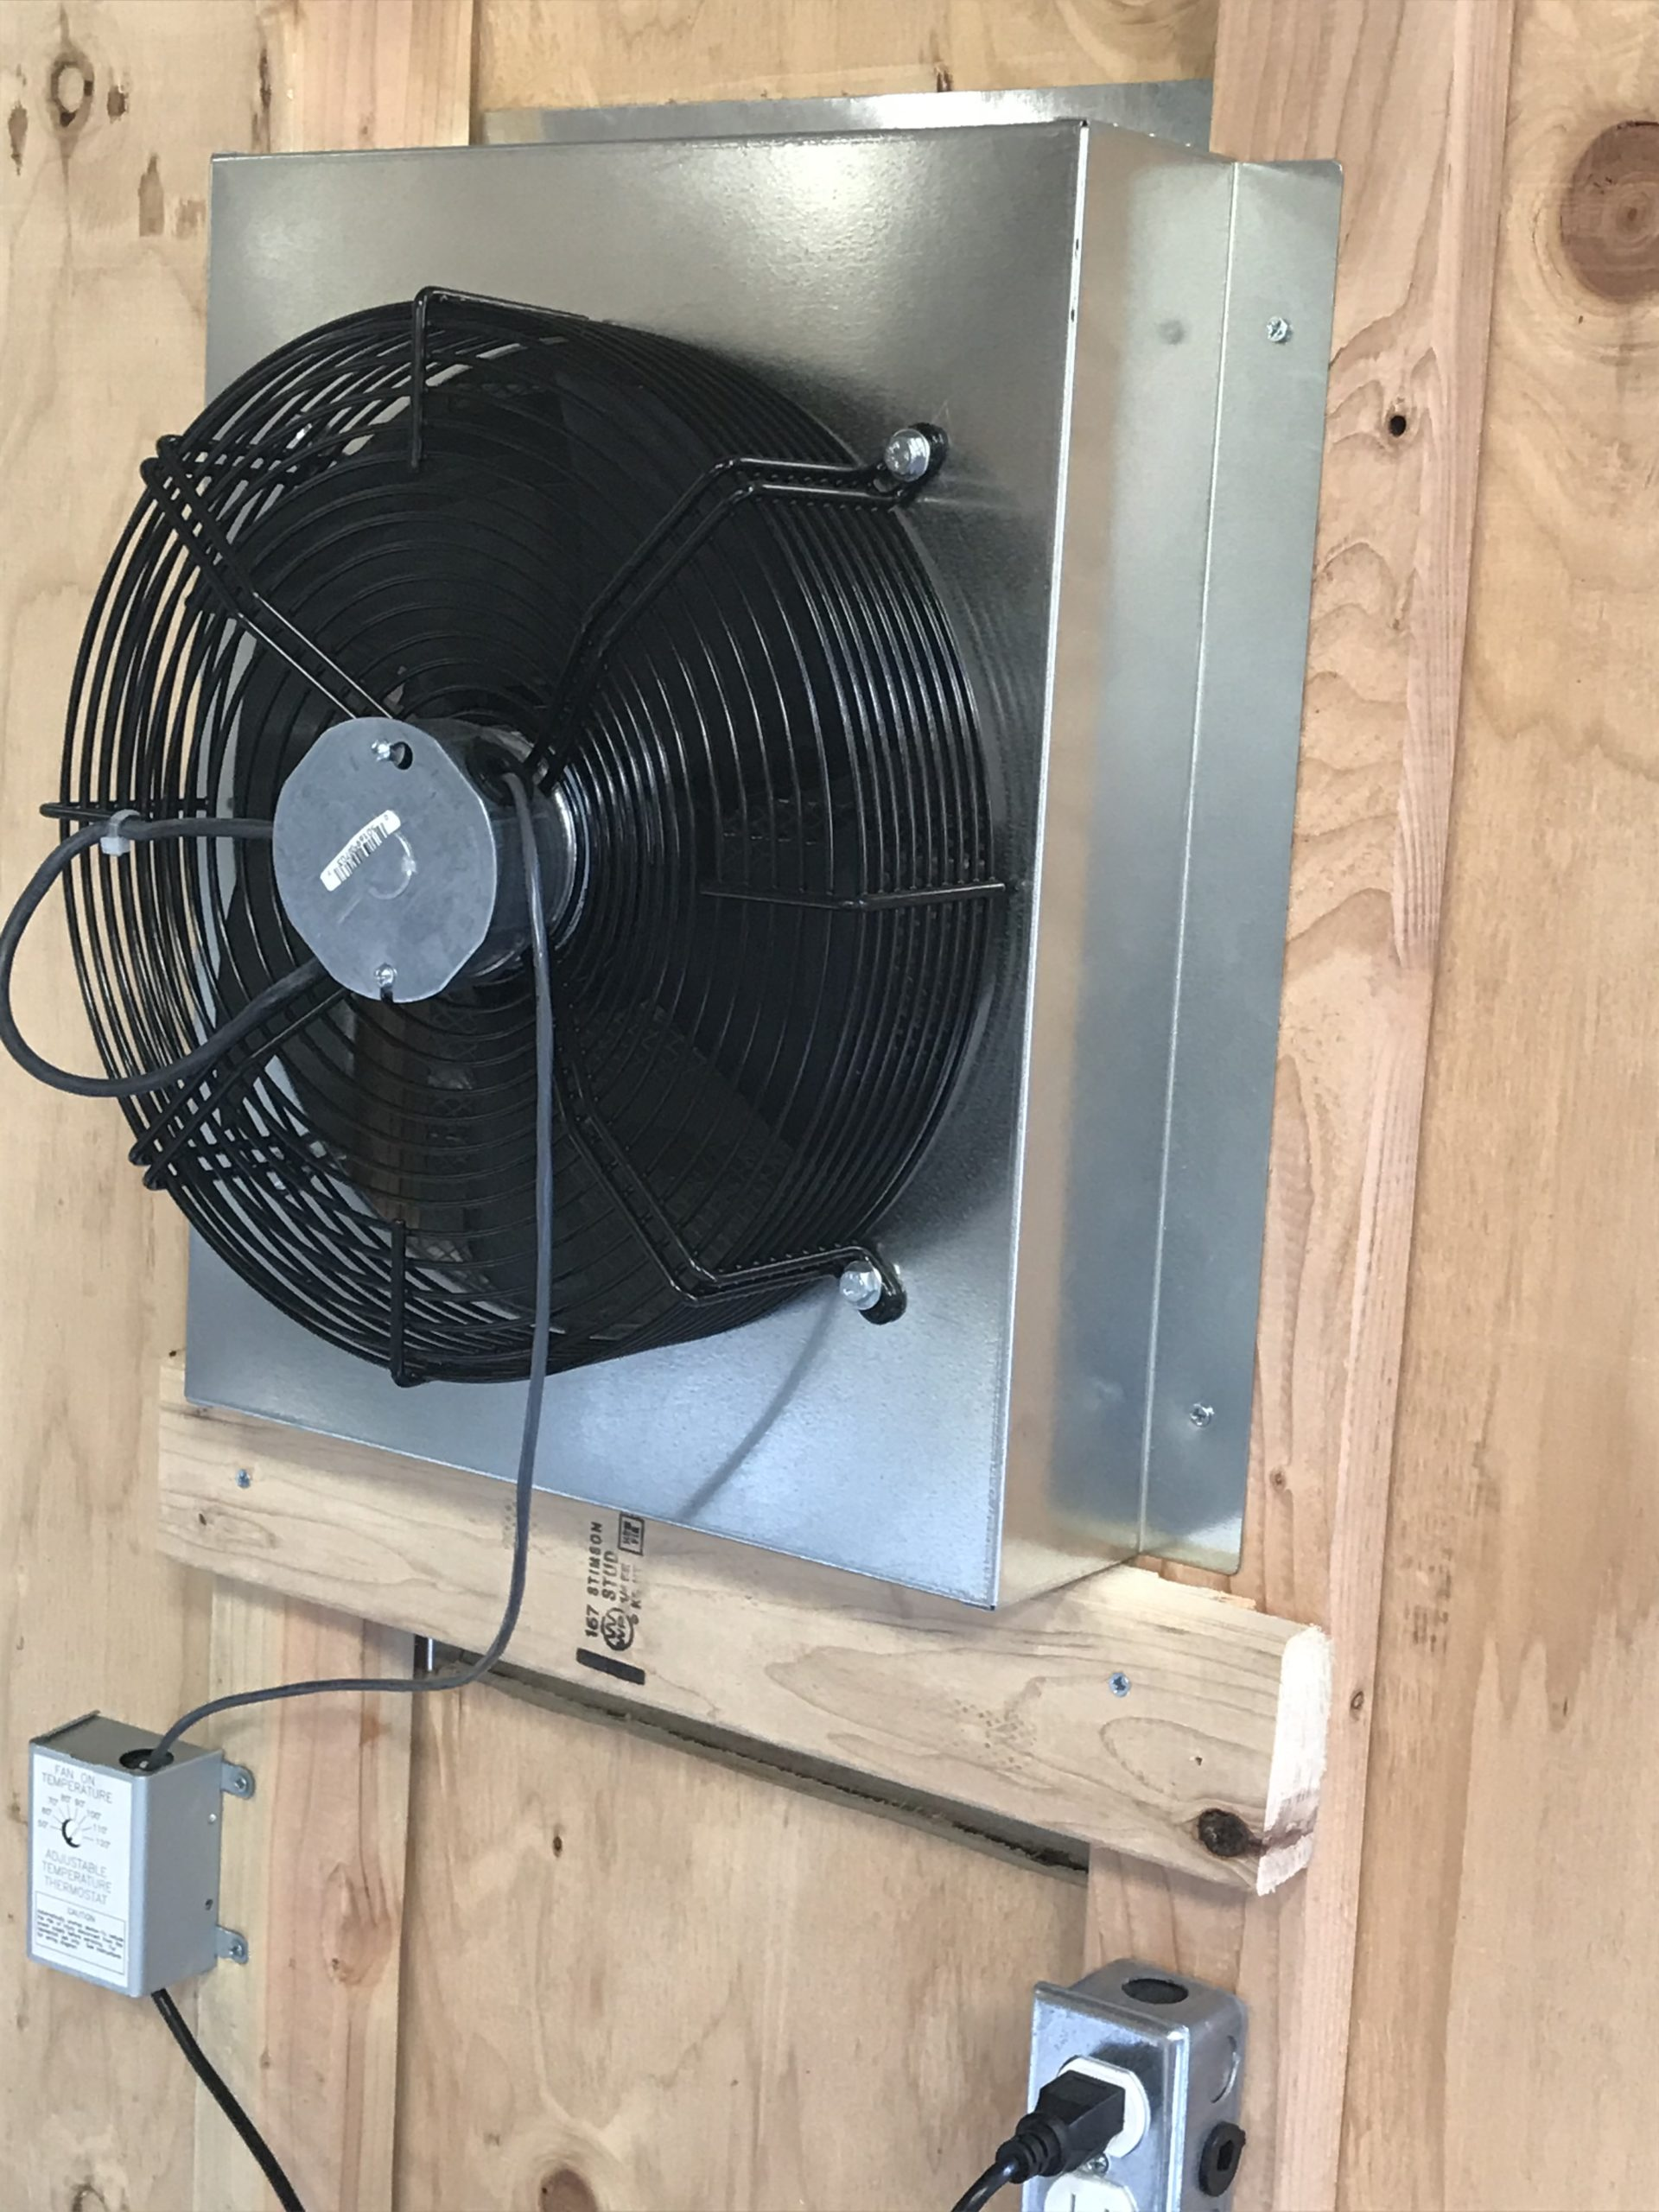 CentricAir Attic Fan